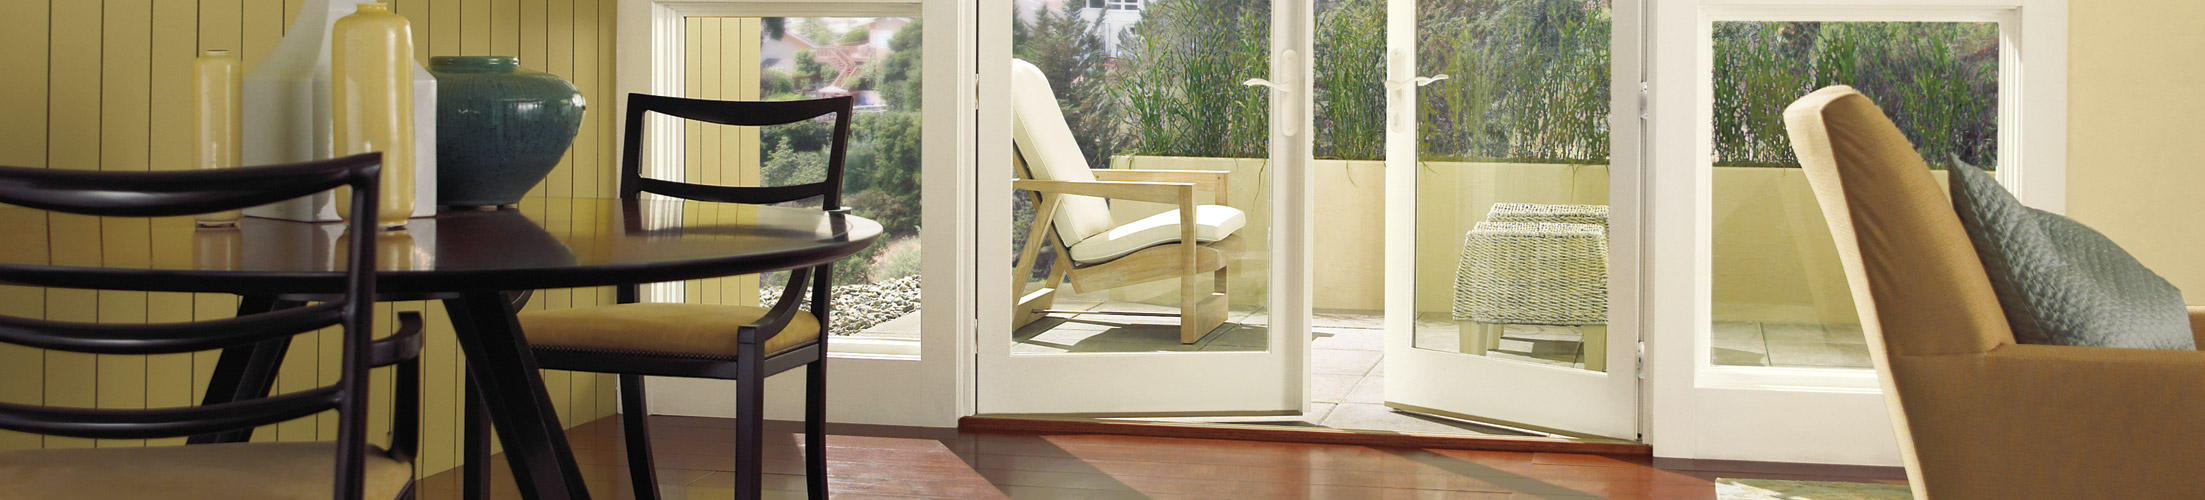 Integrity Outswing French Door